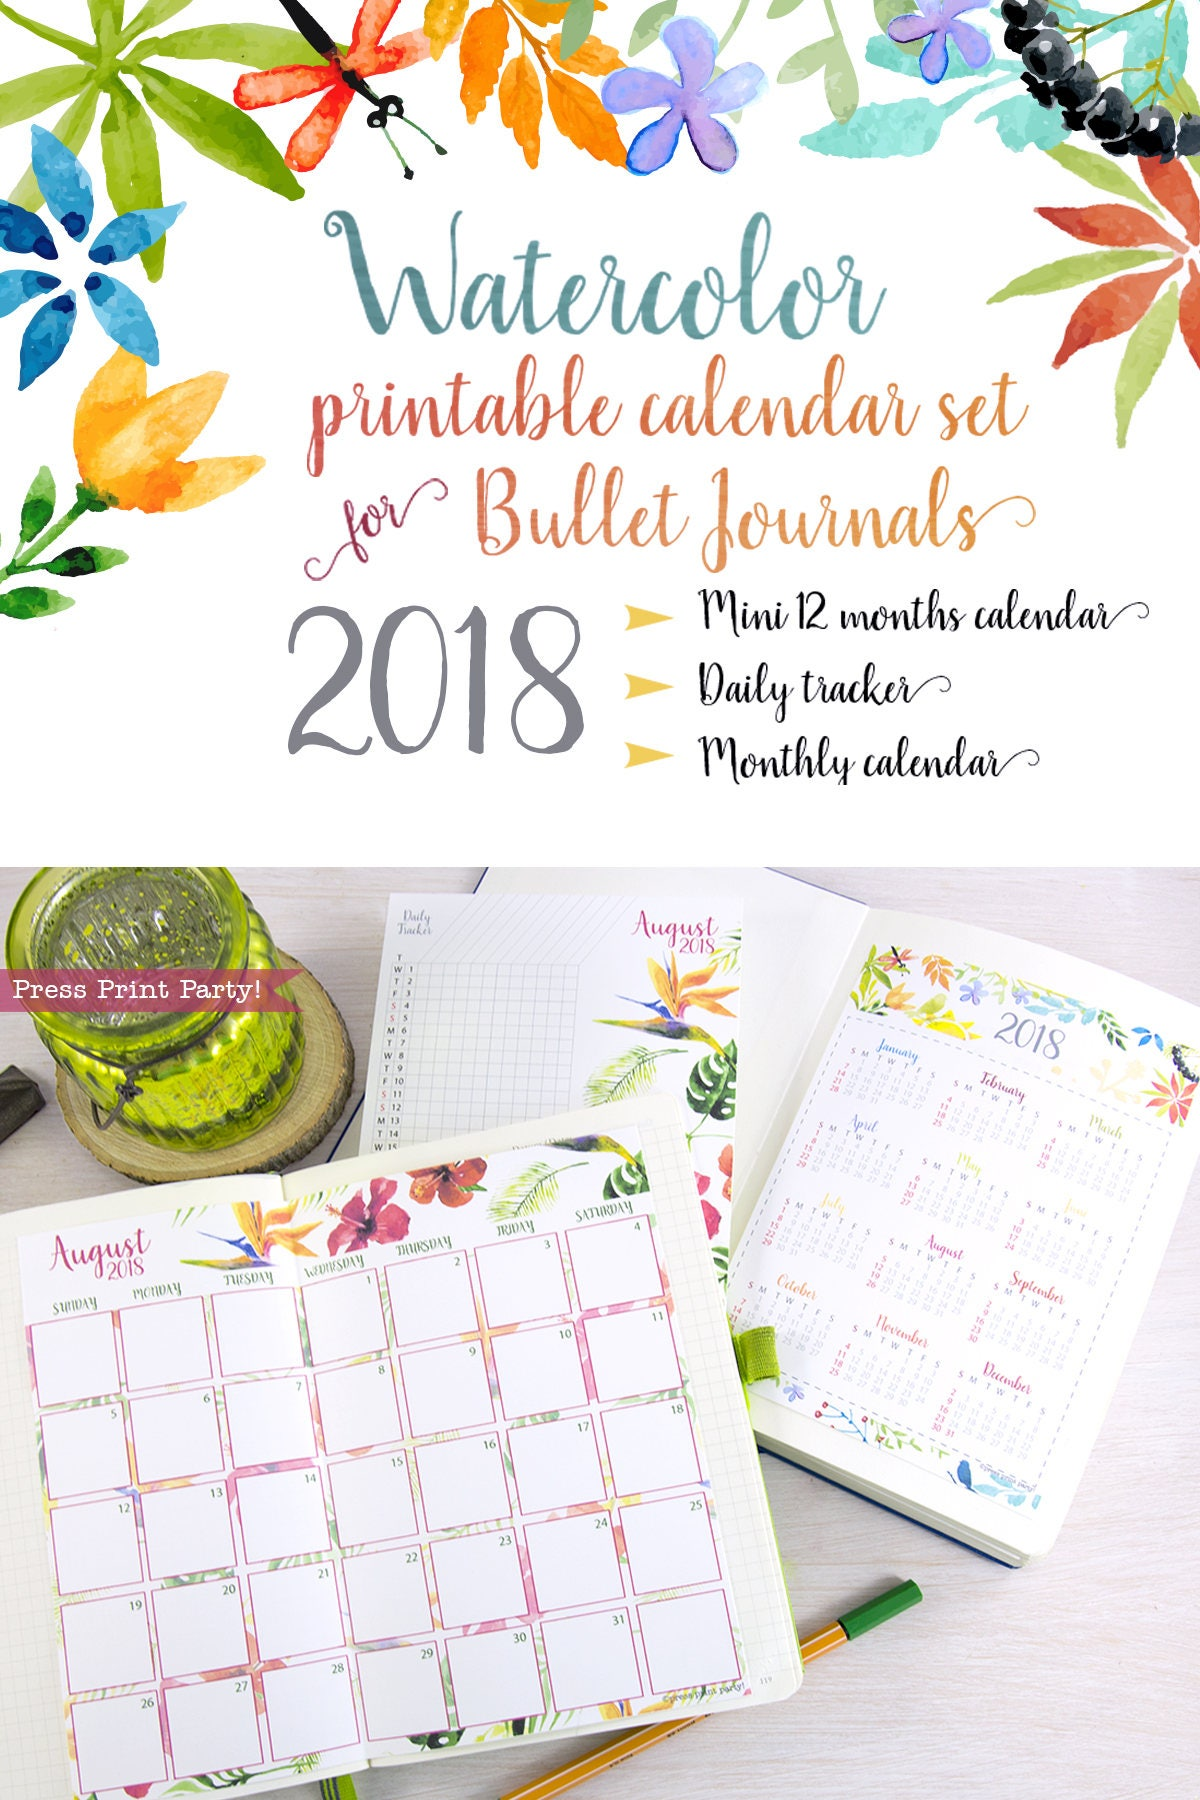 2018 Calendar Printable Set For Bullet Journals And Planners